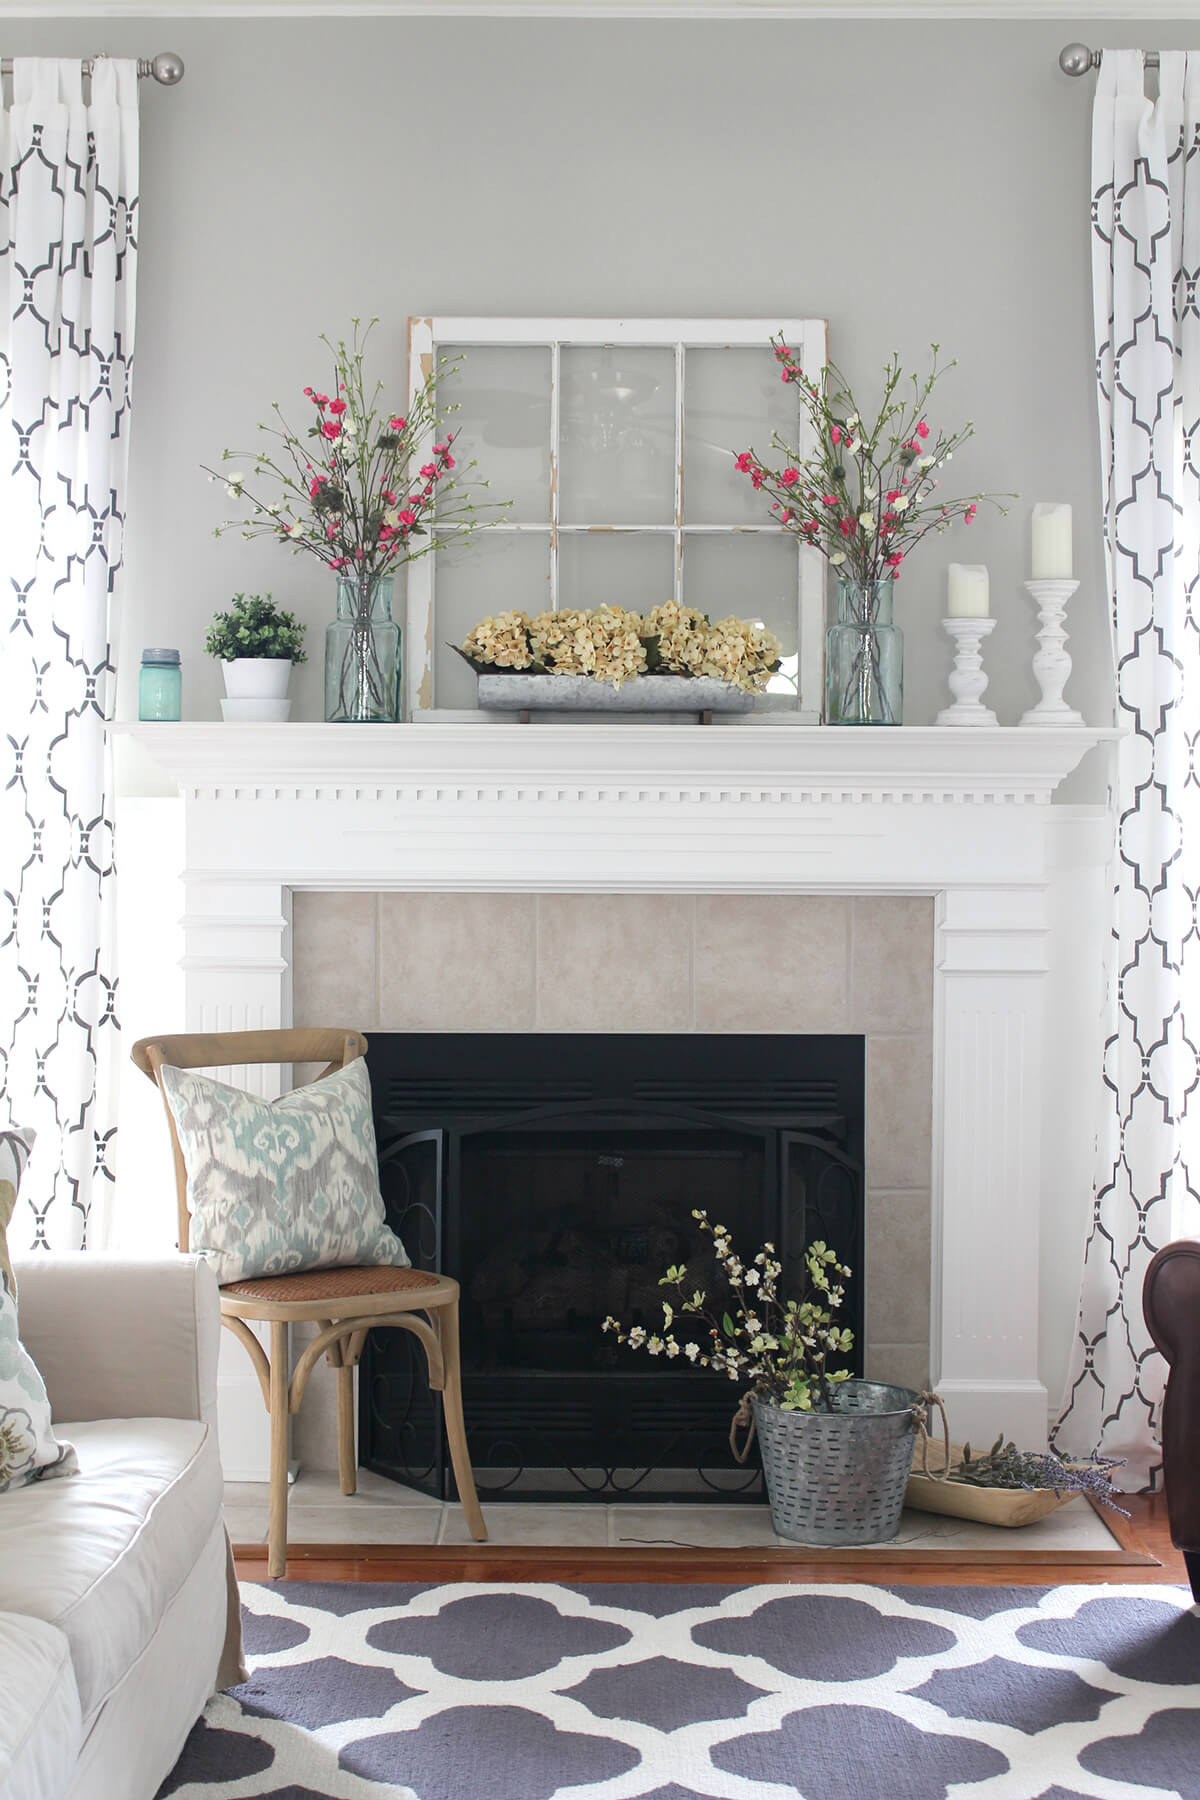 Light and Feminine Country Fireplace Display